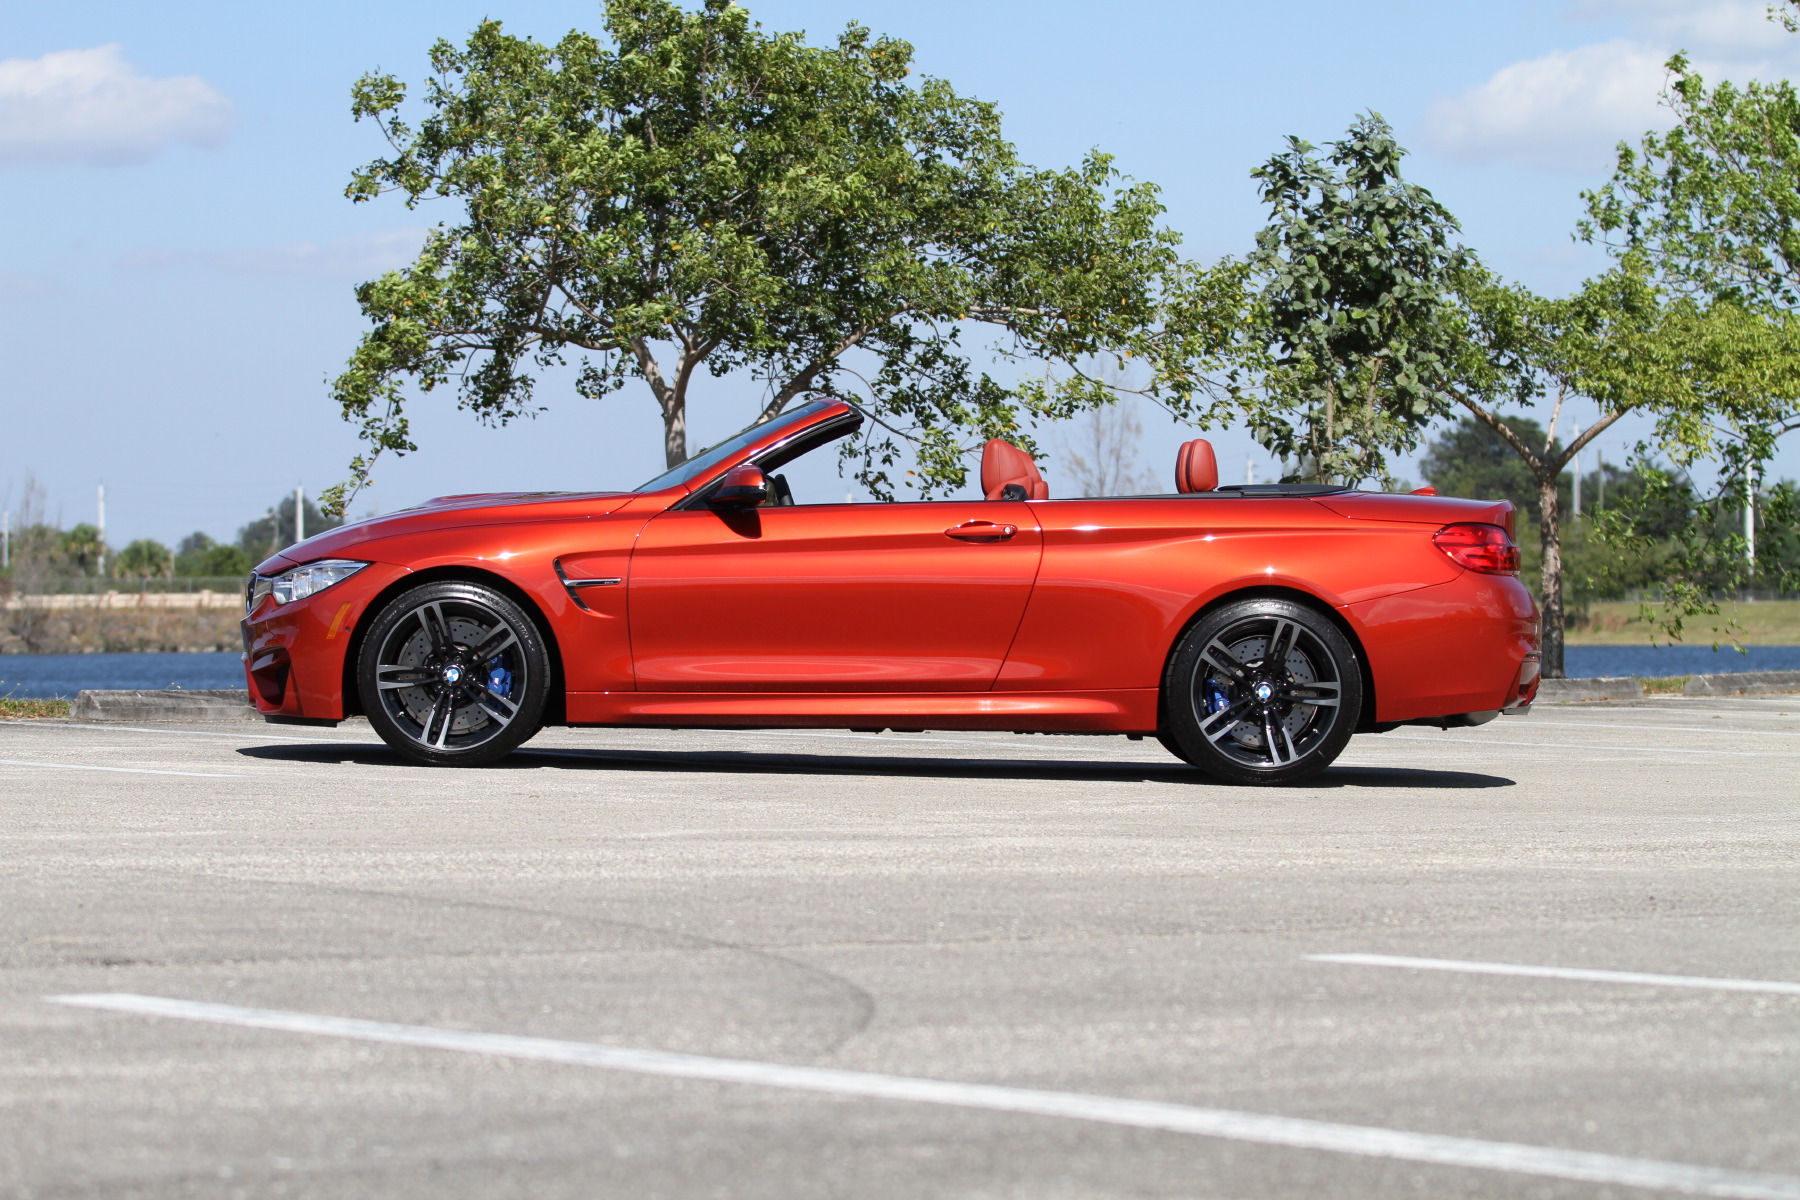 2015 bmw m4 convertible 1 4 mile 0 60 mph testing. Black Bedroom Furniture Sets. Home Design Ideas